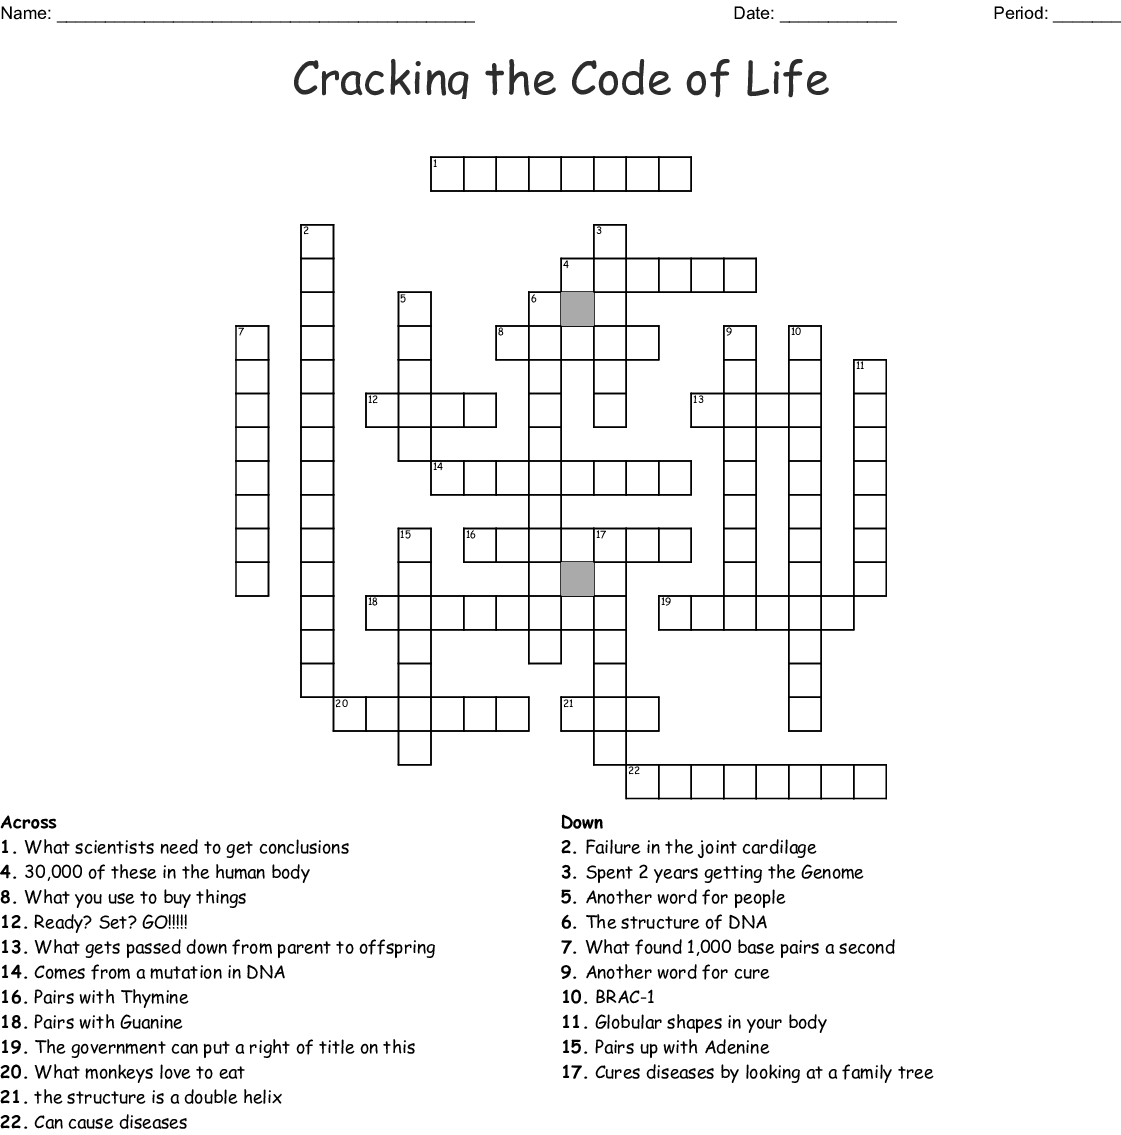 Cracking The Code Of Life Crossword